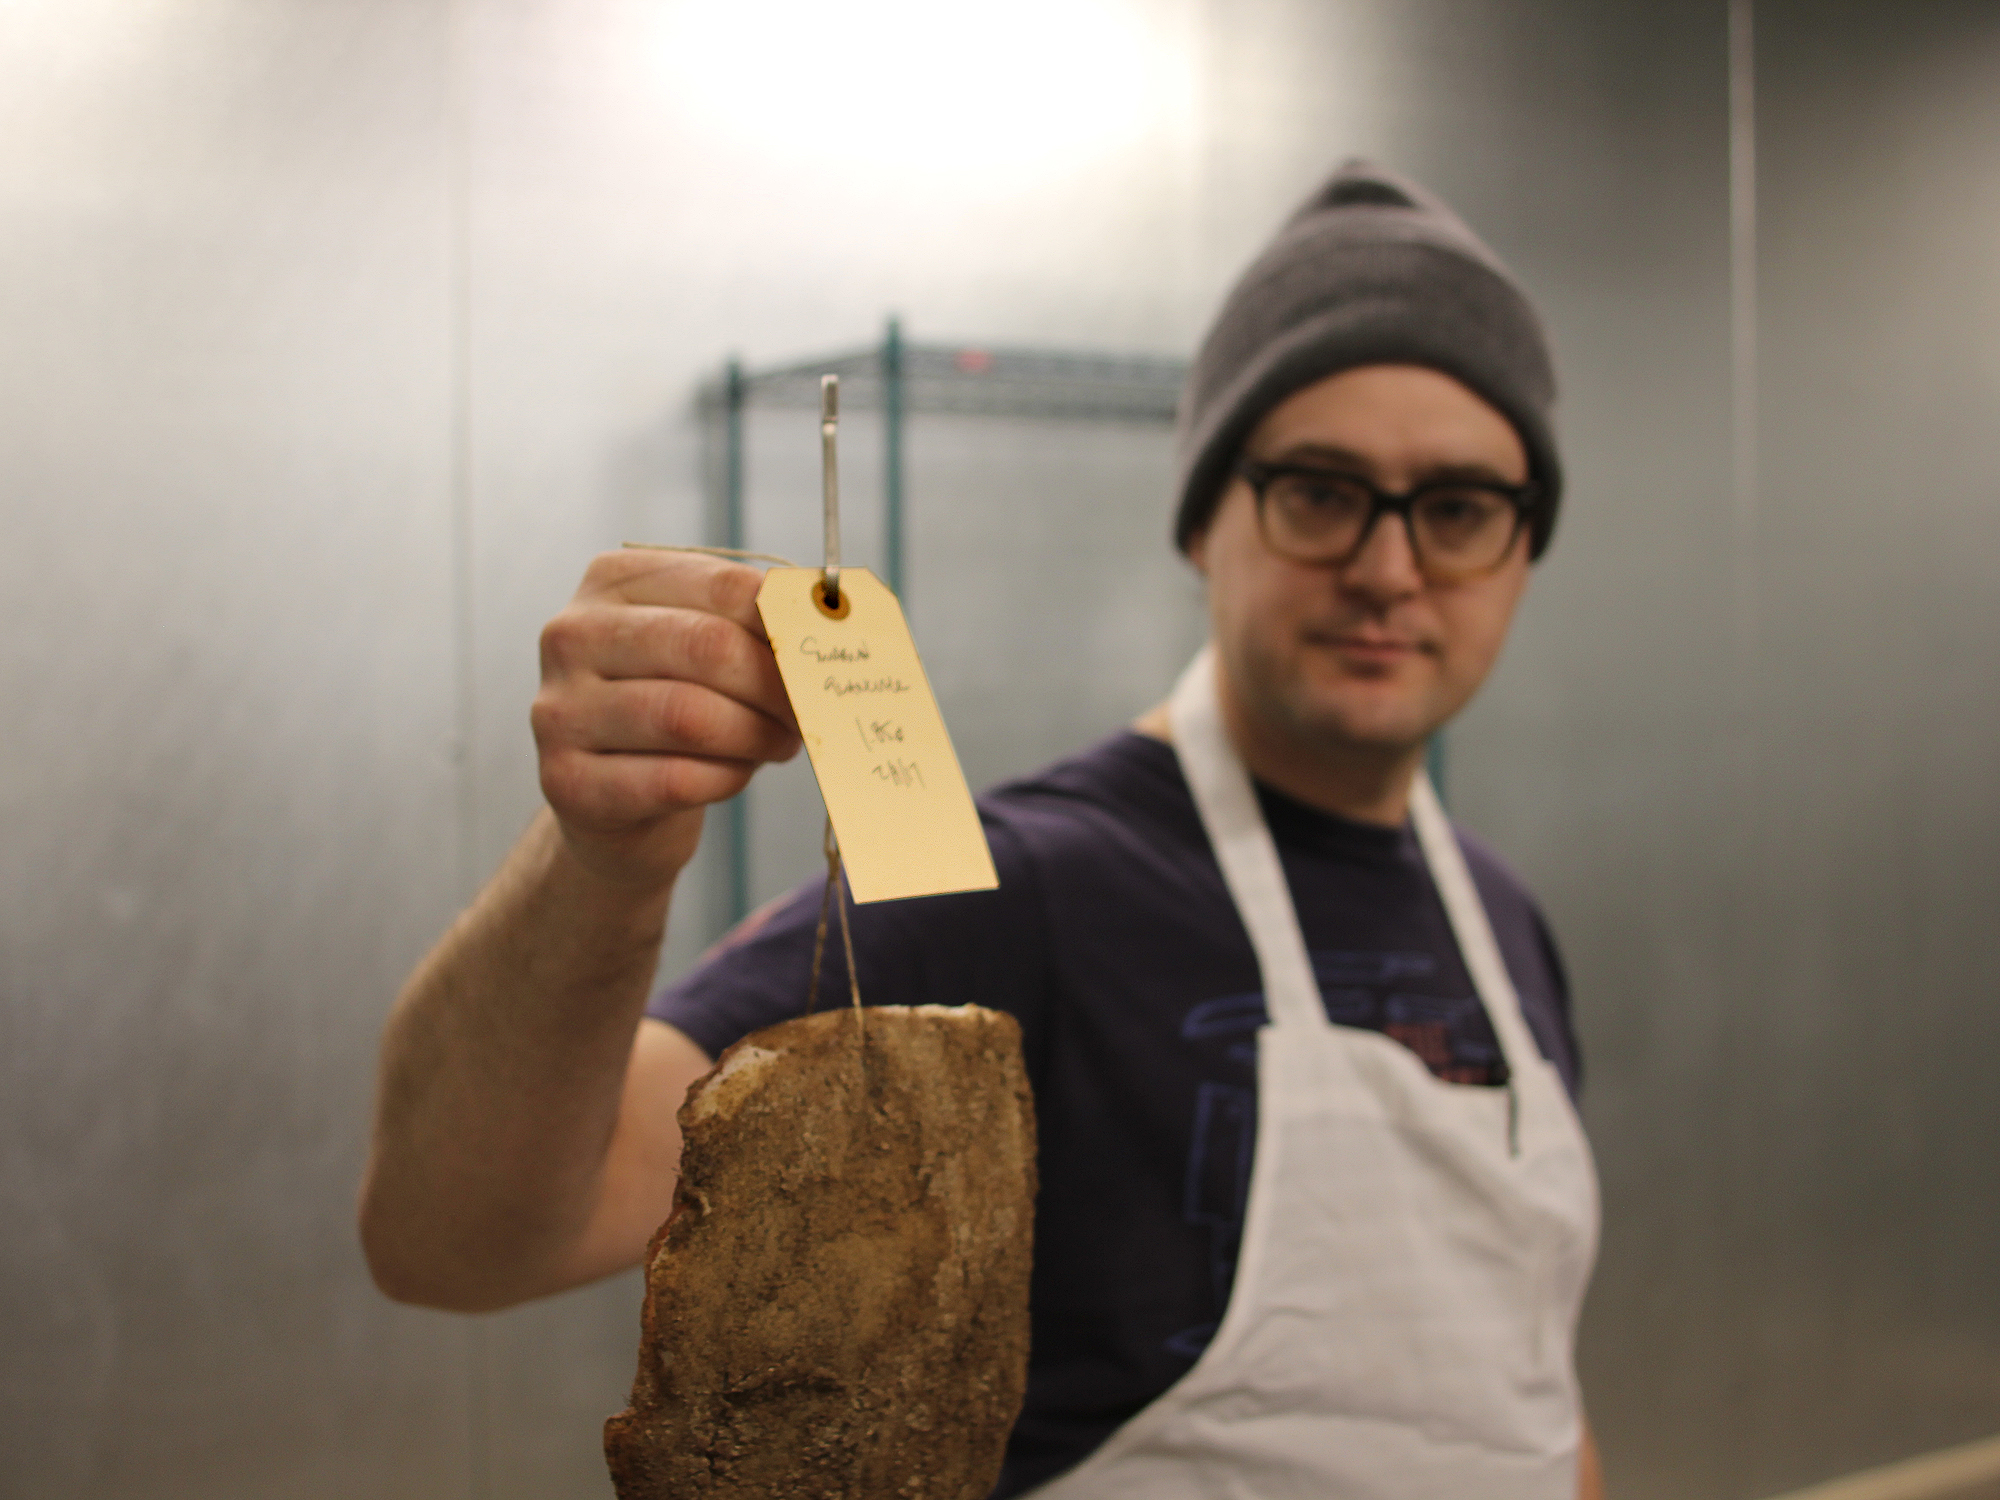 SEE WHAT'S BEEN CURING AT THE BUTCHER AND LARDER ON MARCH 2ND